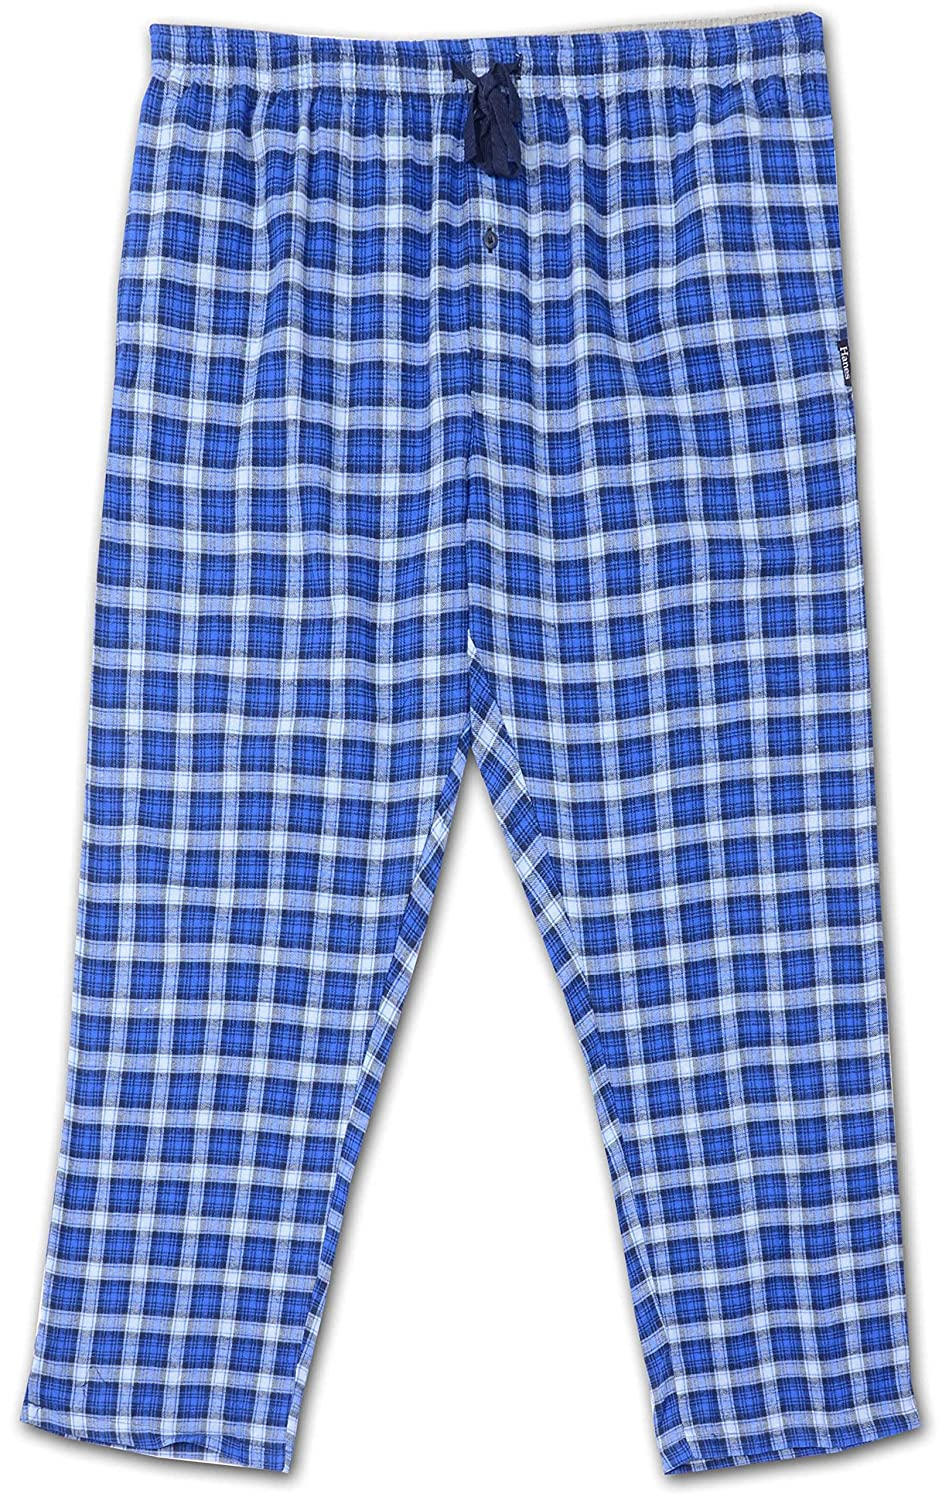 Davis Hanes Big and Tall Flannel Lounge Pant